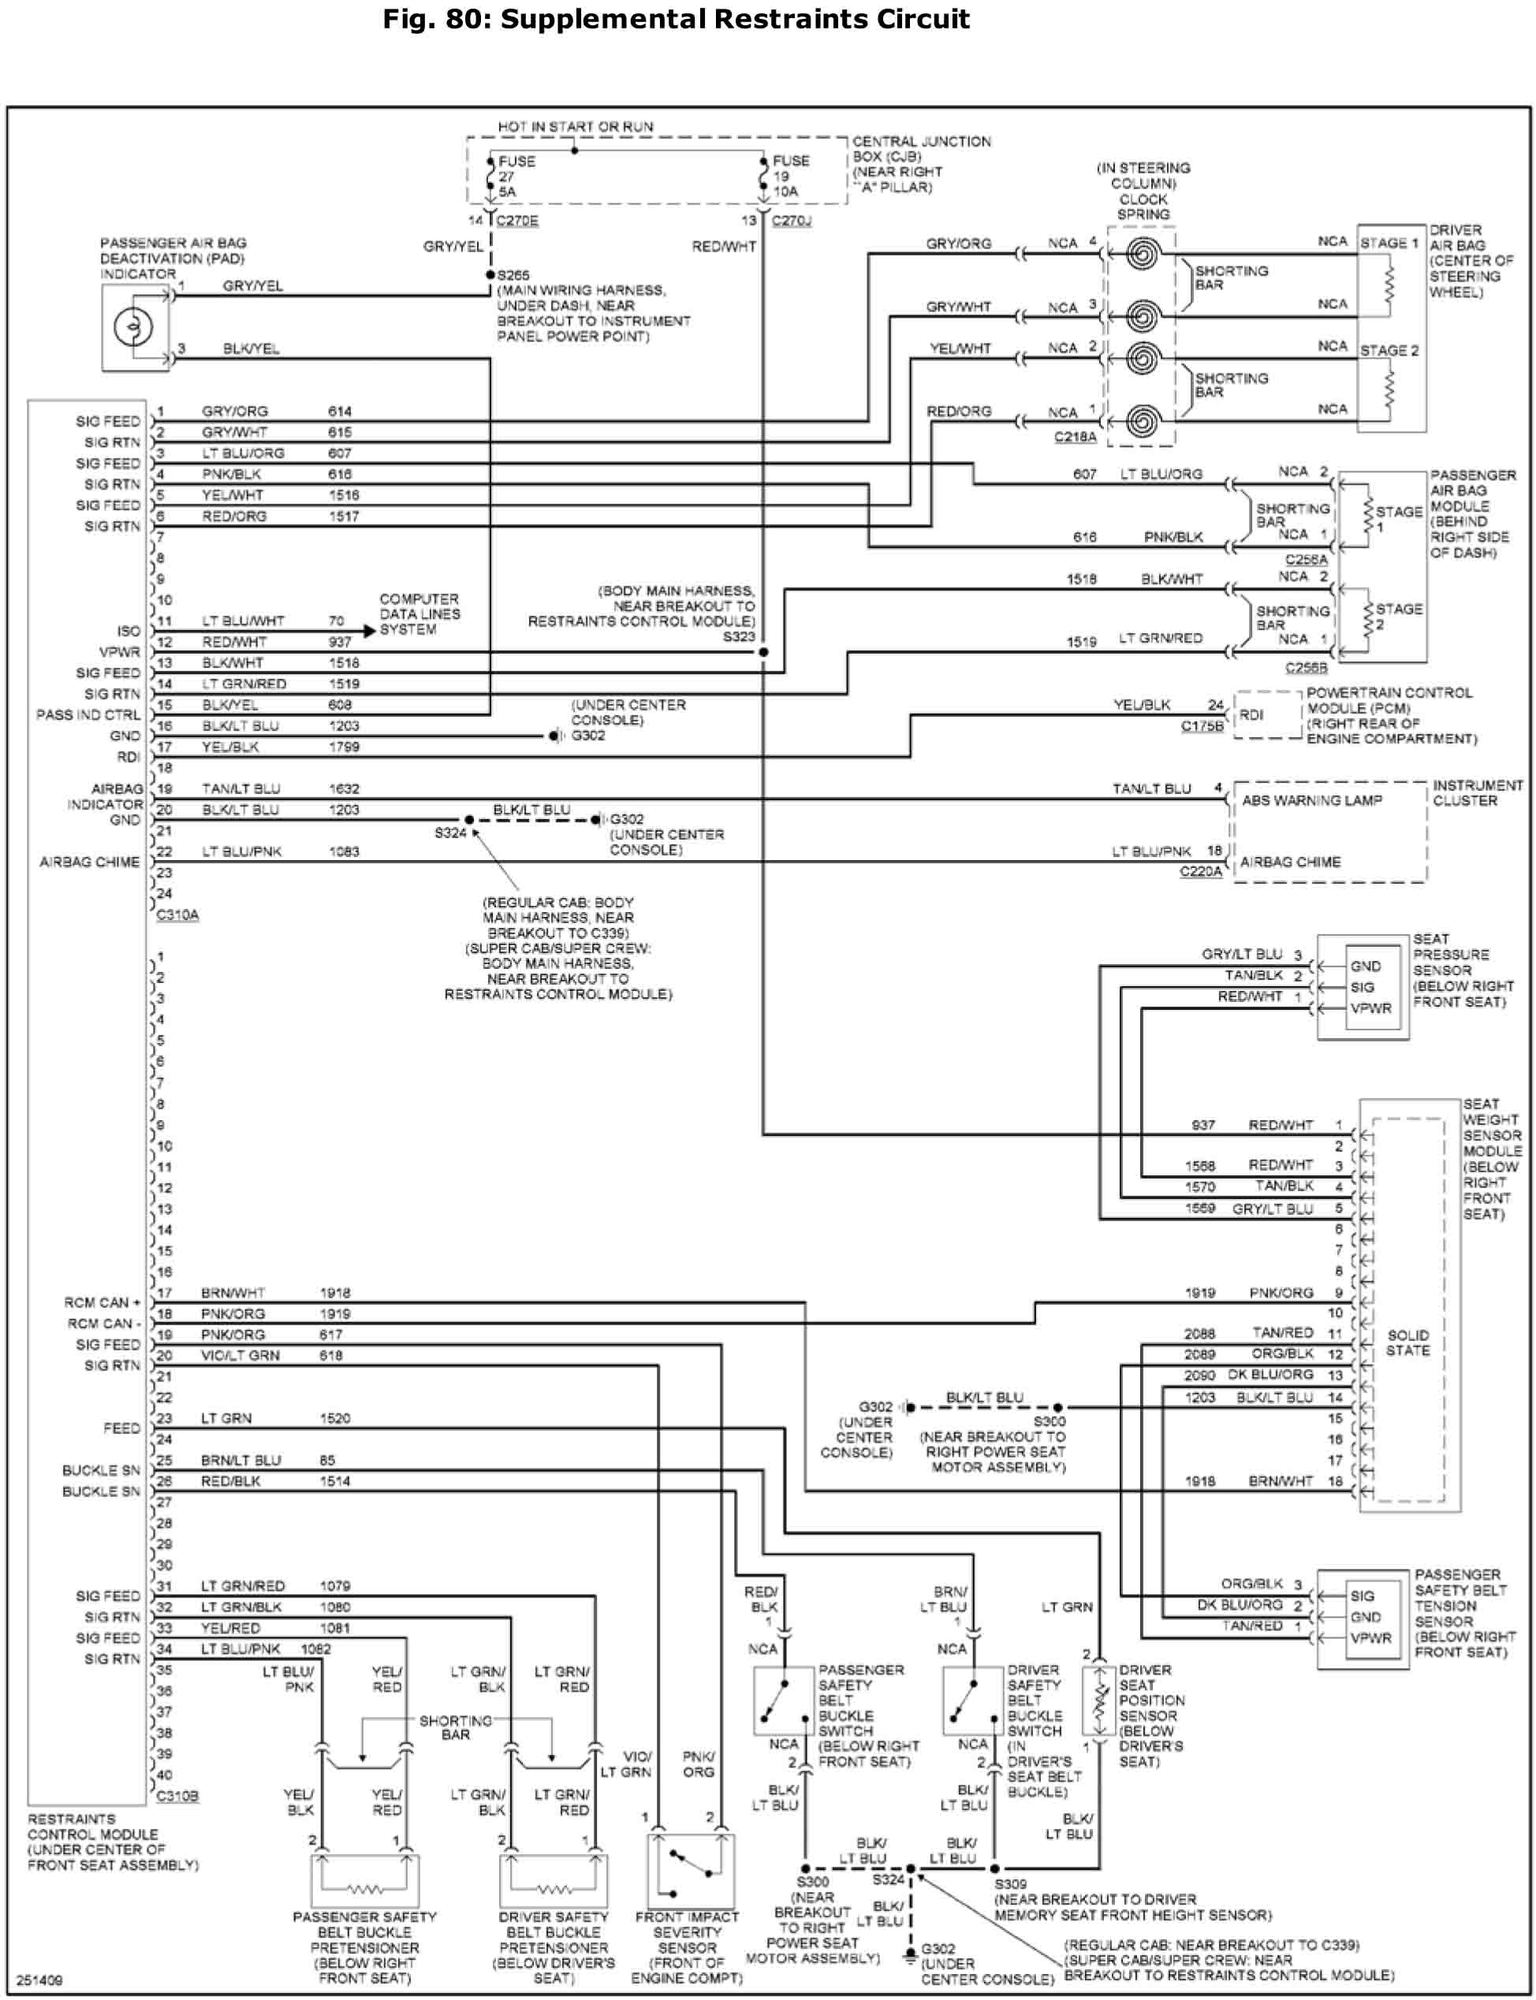 80 07f150_airbag_wiring_diagram_fe541fcfb14ed53b51926a11211ac10867cd5d95 ford f150 wiring diagrams 07 08 ford f150 wiring diagram at edmiracle.co